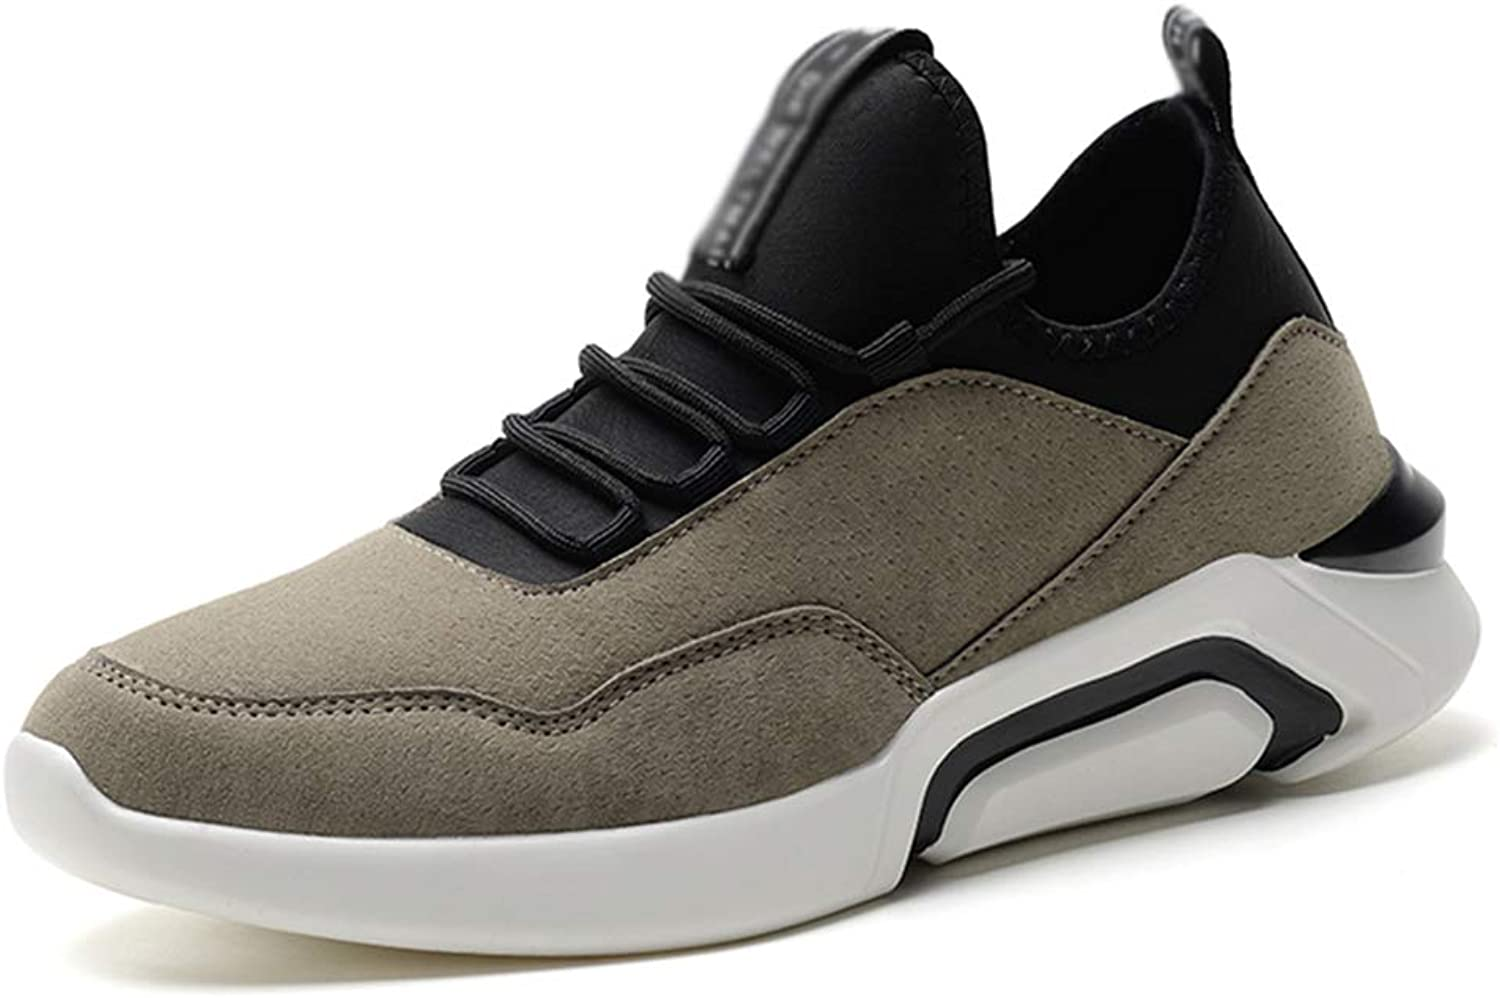 Outdoor Casual shoes, Male,Soft Comfortable Breathable Lace Suede Running shoes Non-Slip Wear Resistant Sports shoes High Elasticity